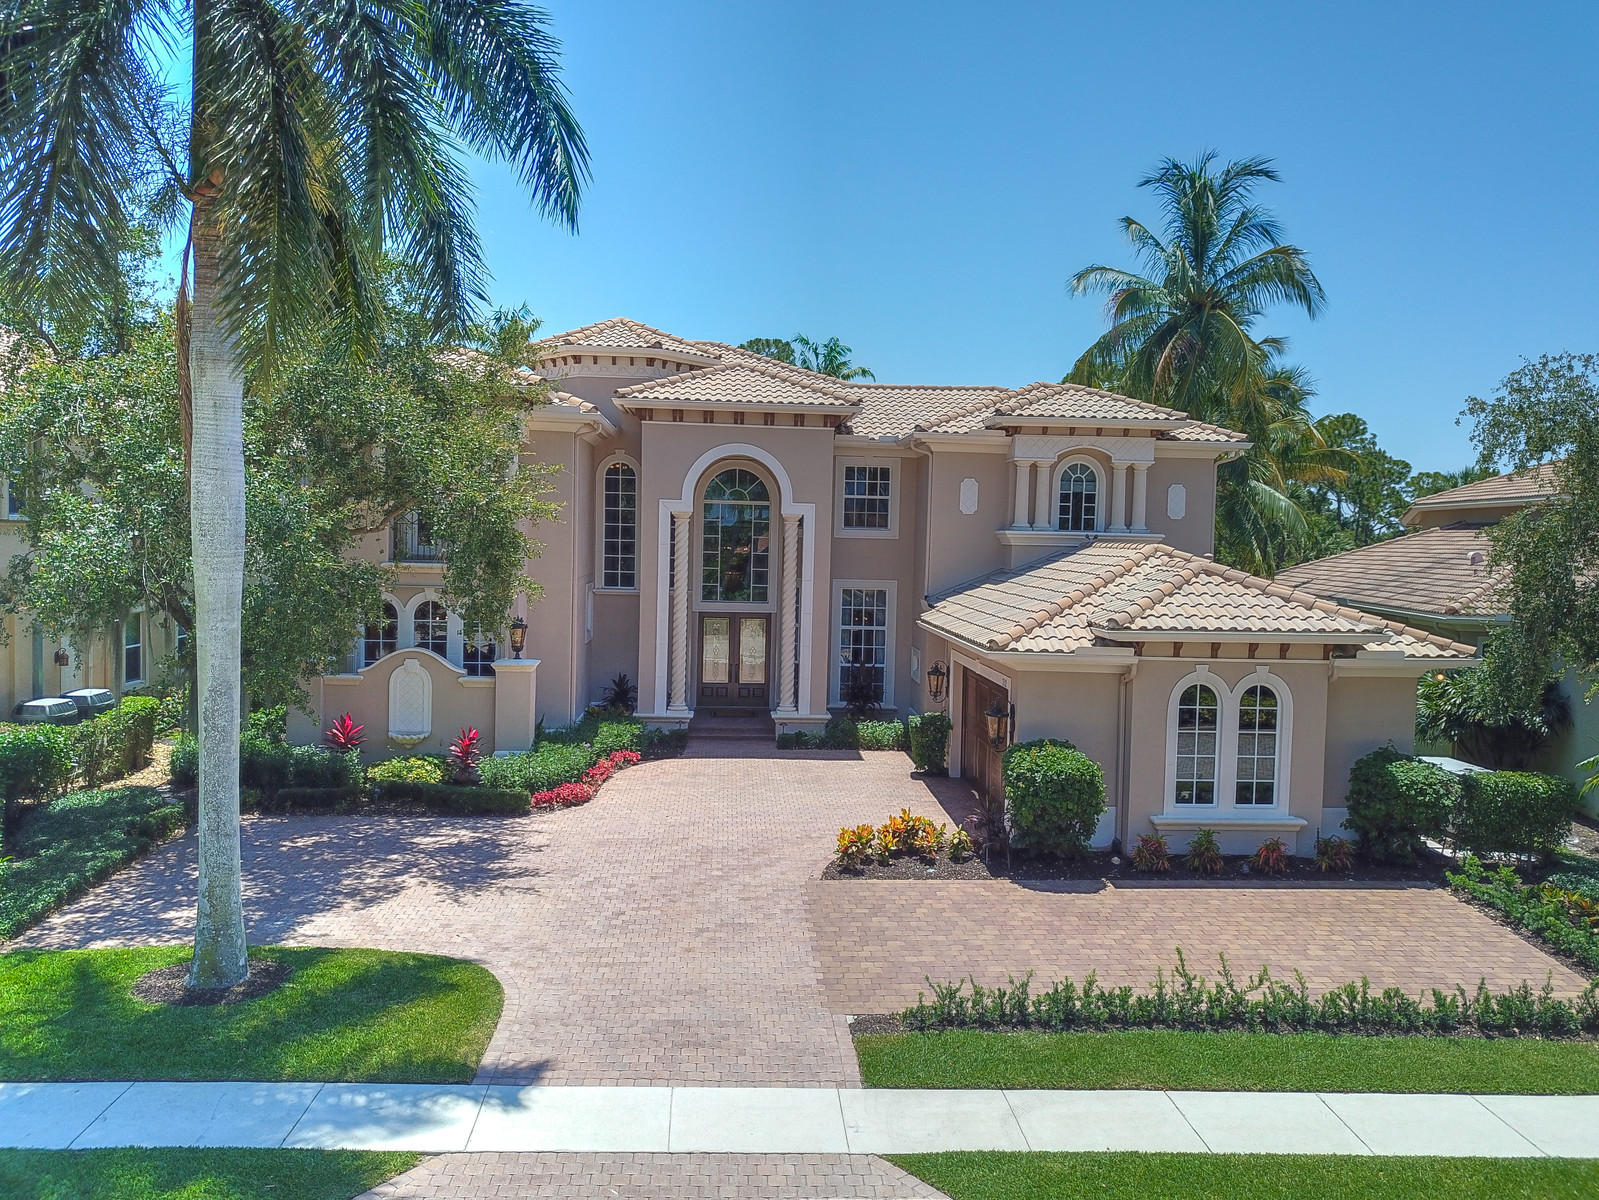 New Home for sale at 712 Cote Azur Drive in Palm Beach Gardens